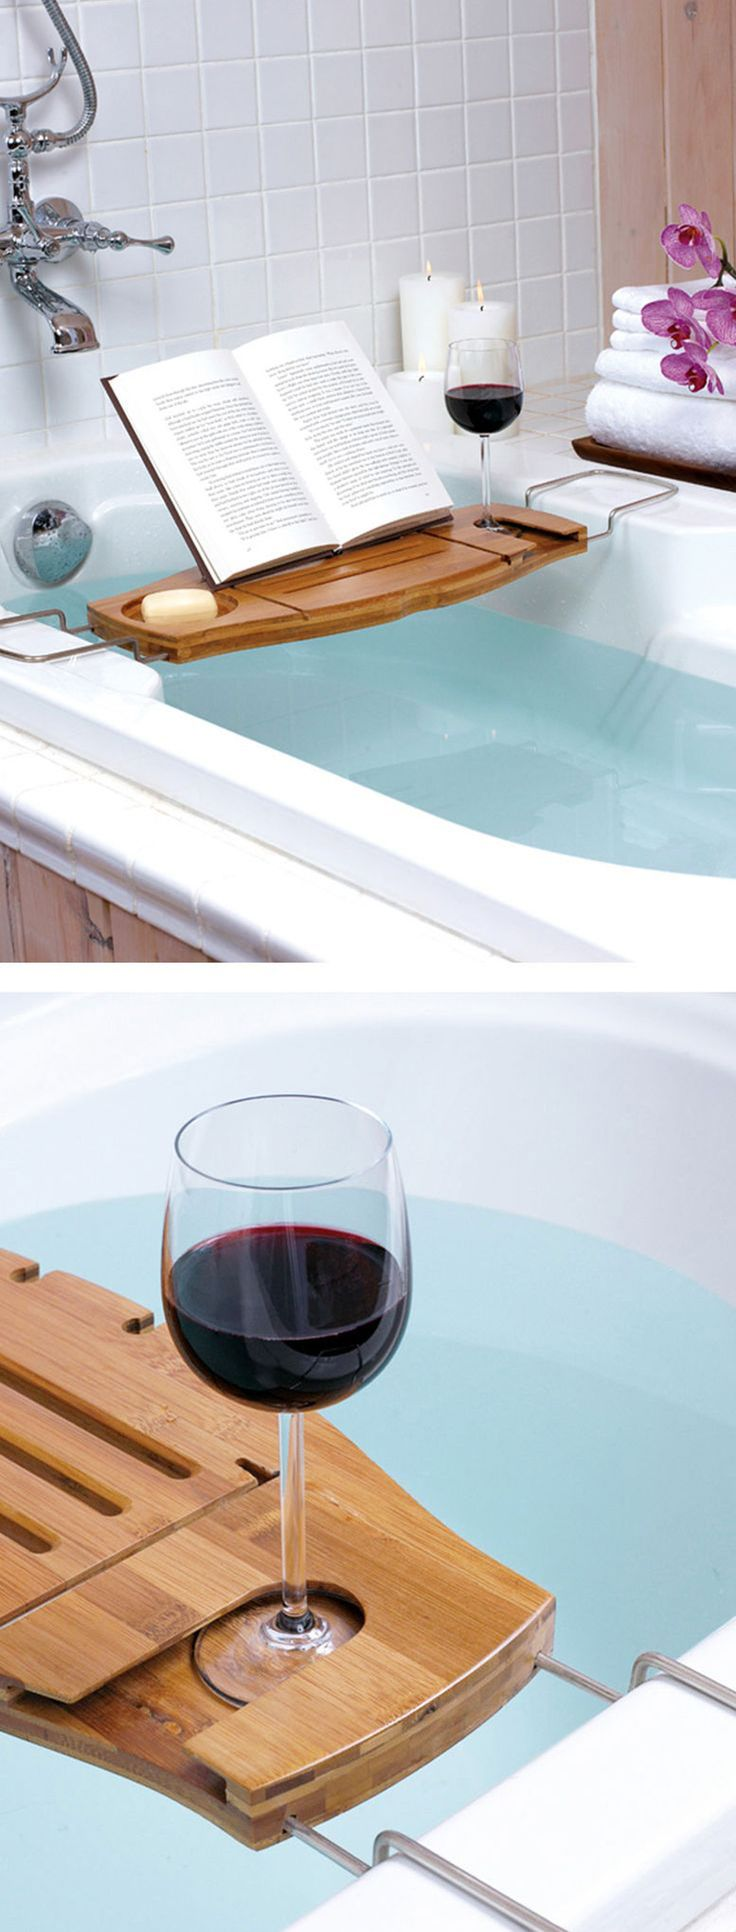 22 Cool Bathtub Caddies For Comfortable Bathing | http://www.designrulz.com/design/2015/07/22-cool-bathtub-caddies-for-comfortable-bathing/